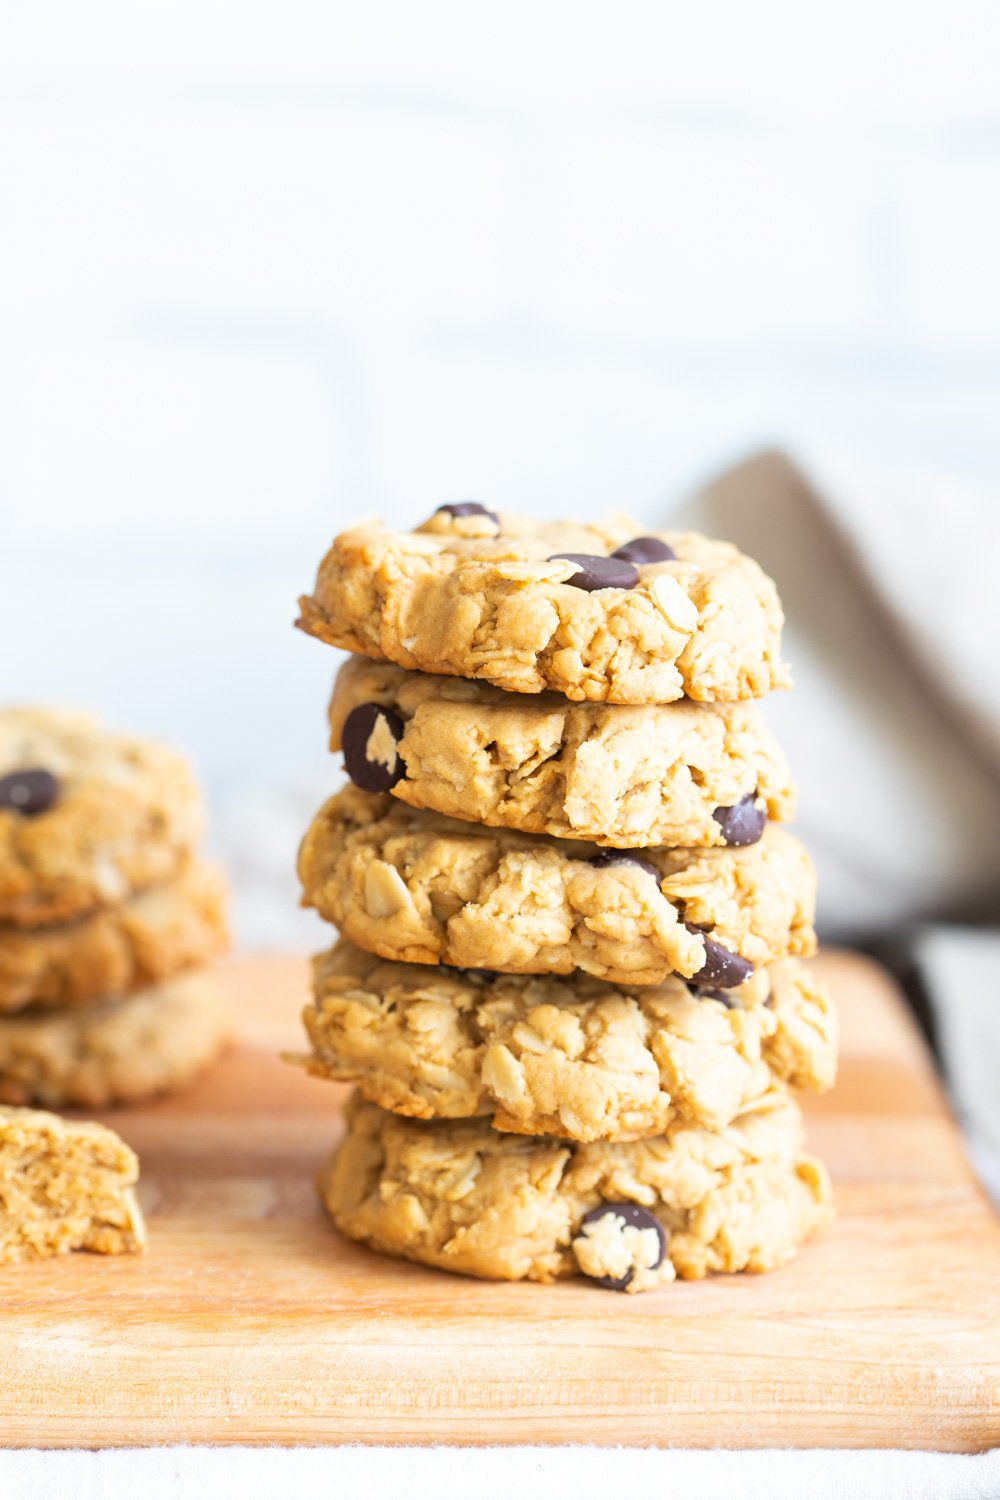 Vegan Peanut Butter Oatmeal Chocolate Chip Cookies on wood board